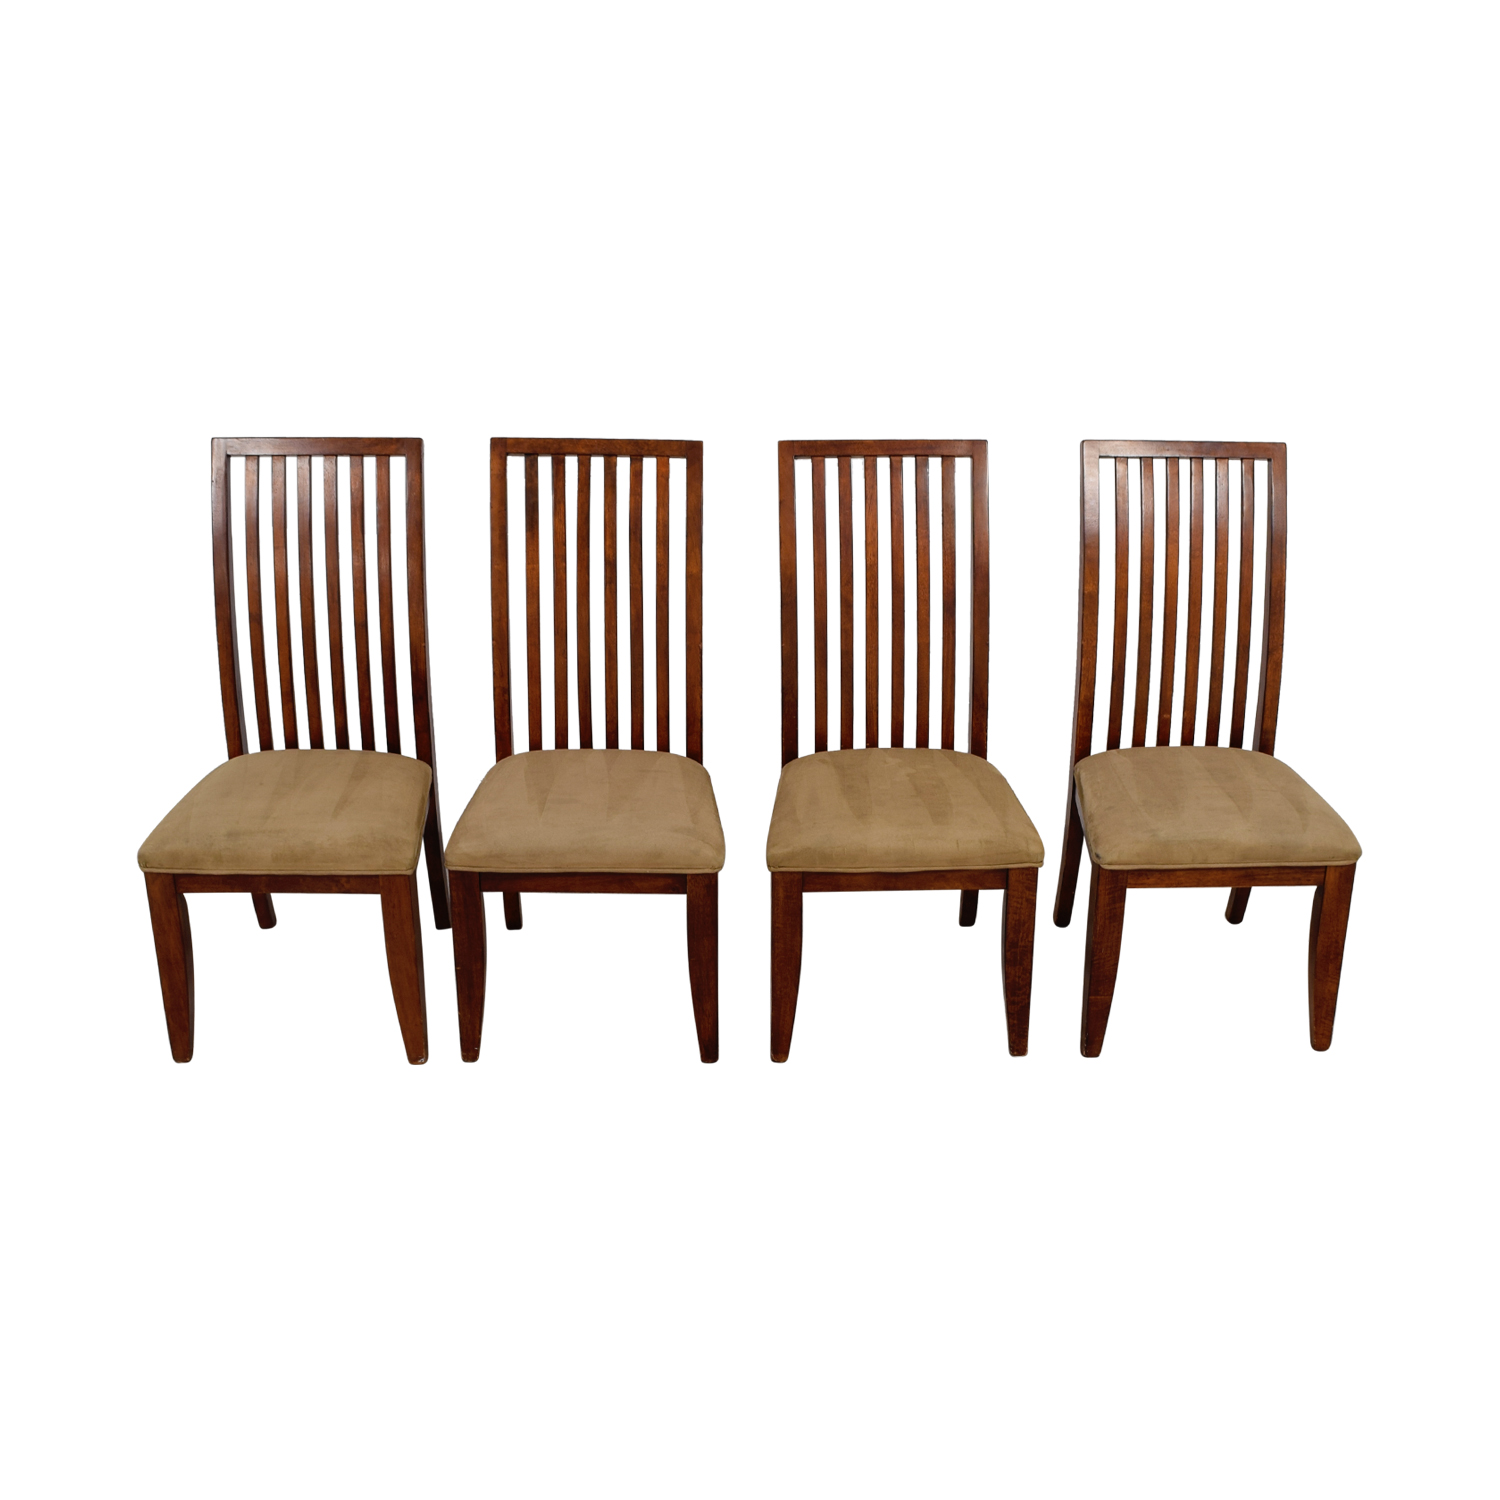 88 OFF  Macys Macys Tan Upholstered Dining Chairs  Chairs